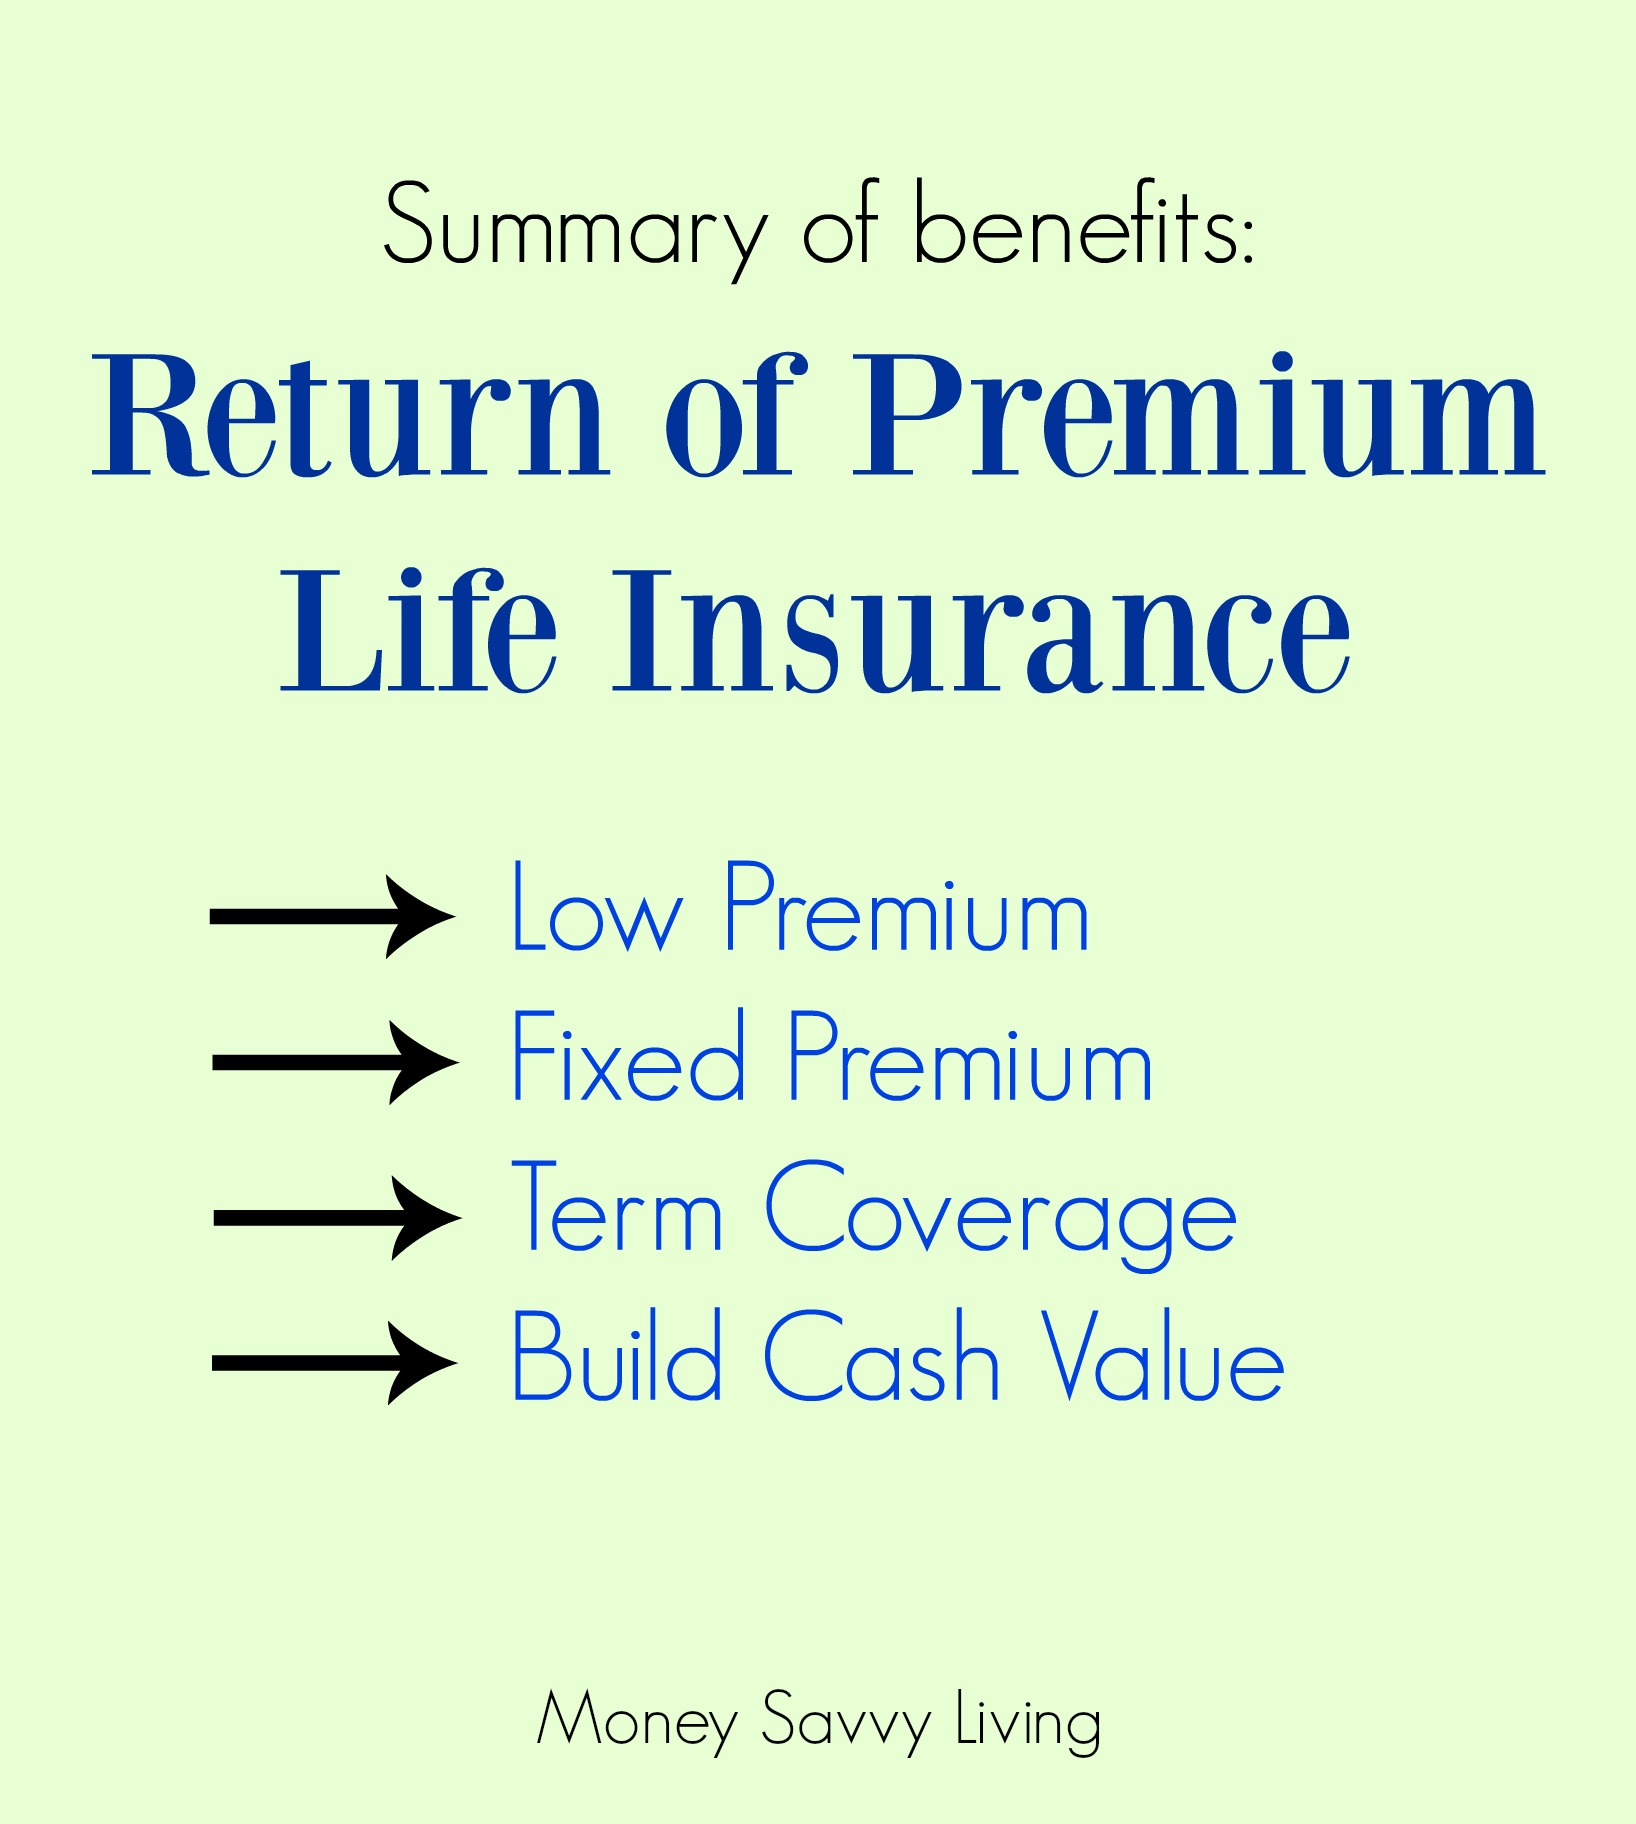 Return of Premium Life Insurance // Money Savvy Living #life #insurance #finance #money #budget #estateplanning